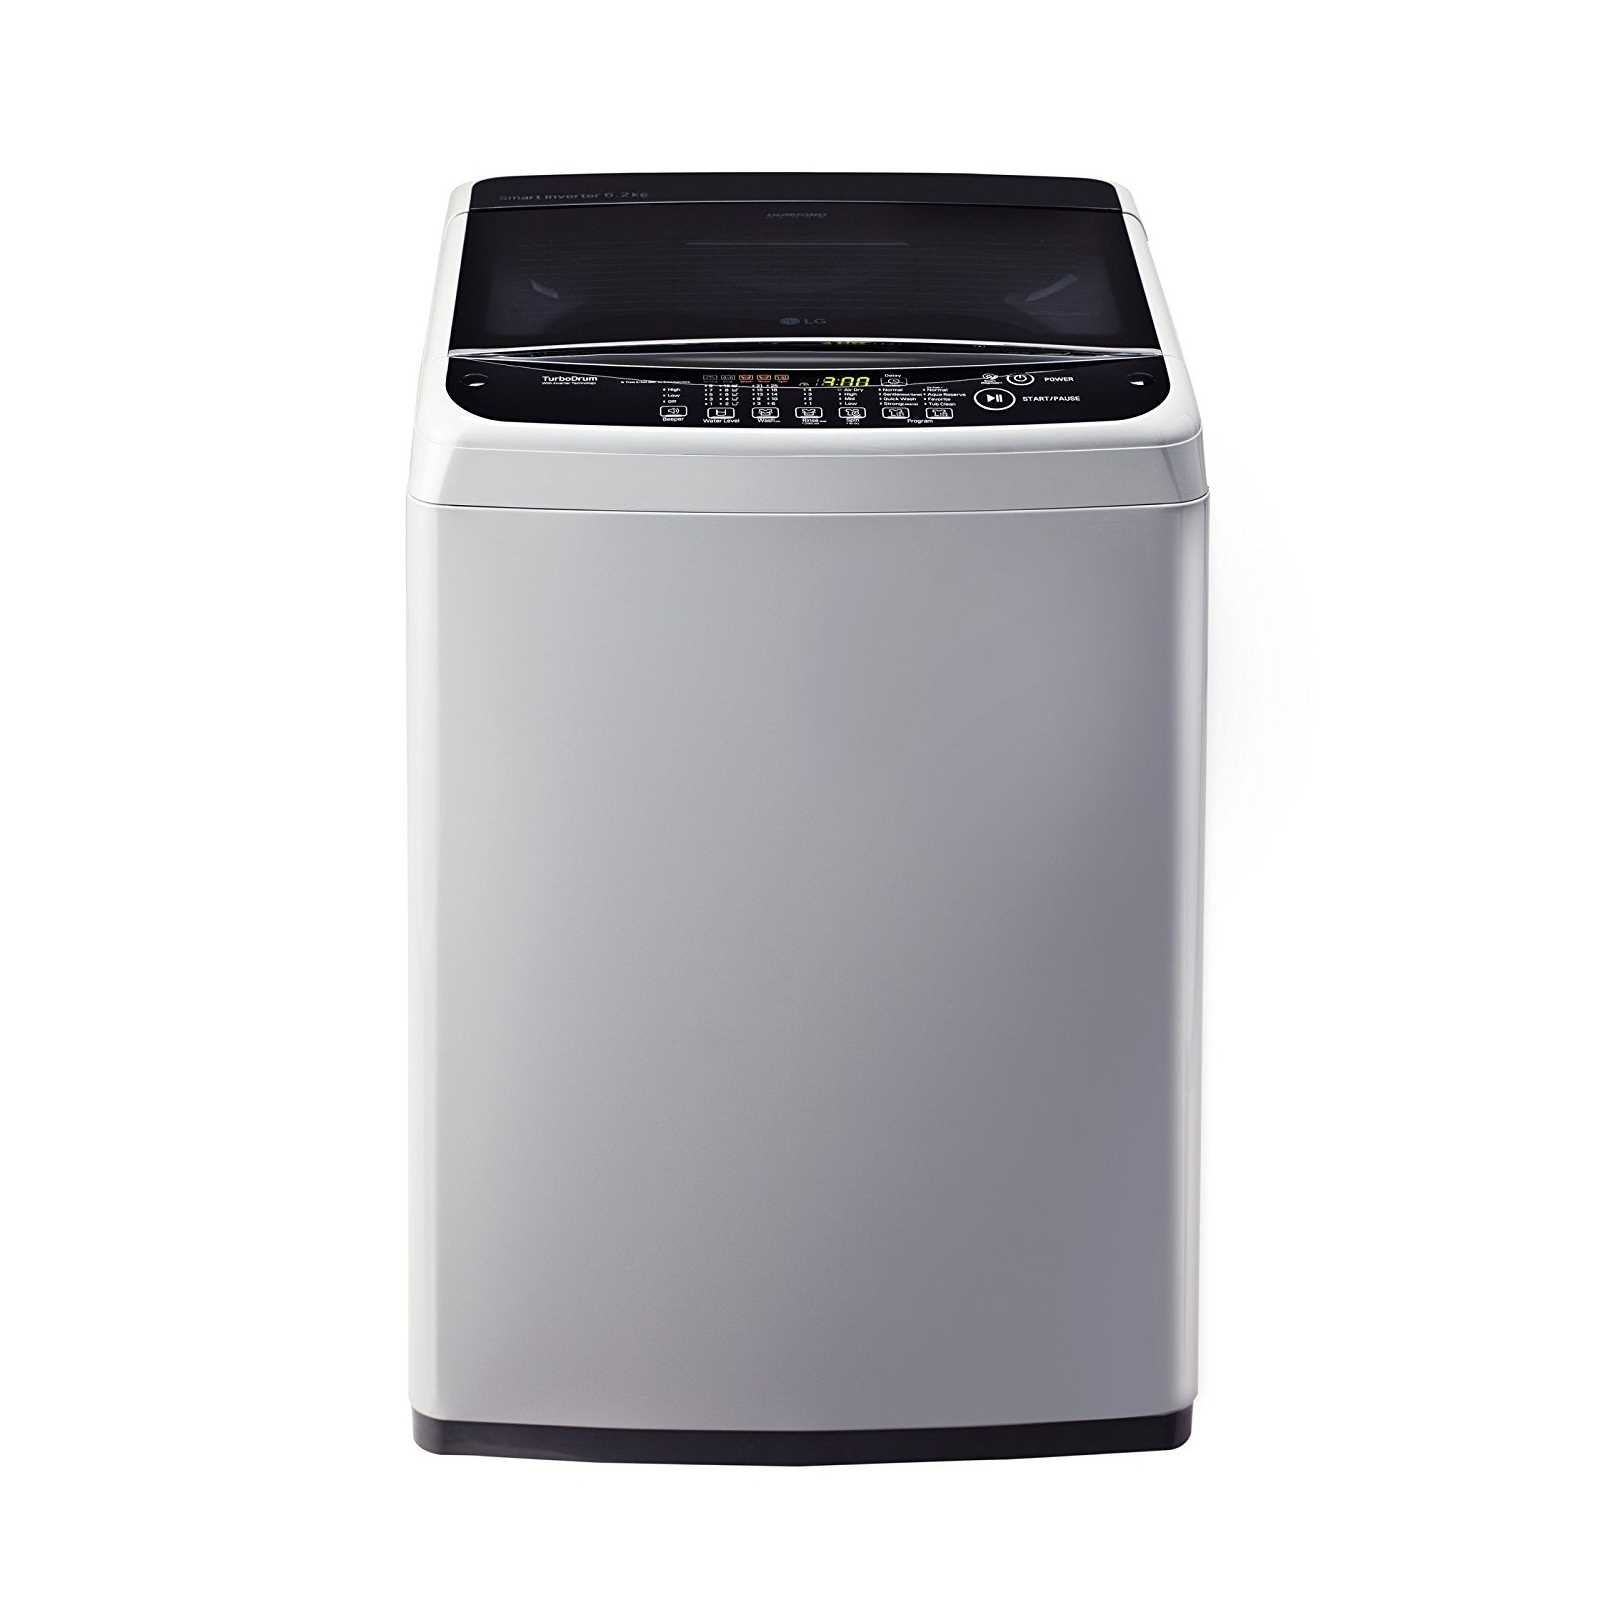 LG T7281NDDLG 6.2 Kg Fully Automatic Top Loading Washing Machine